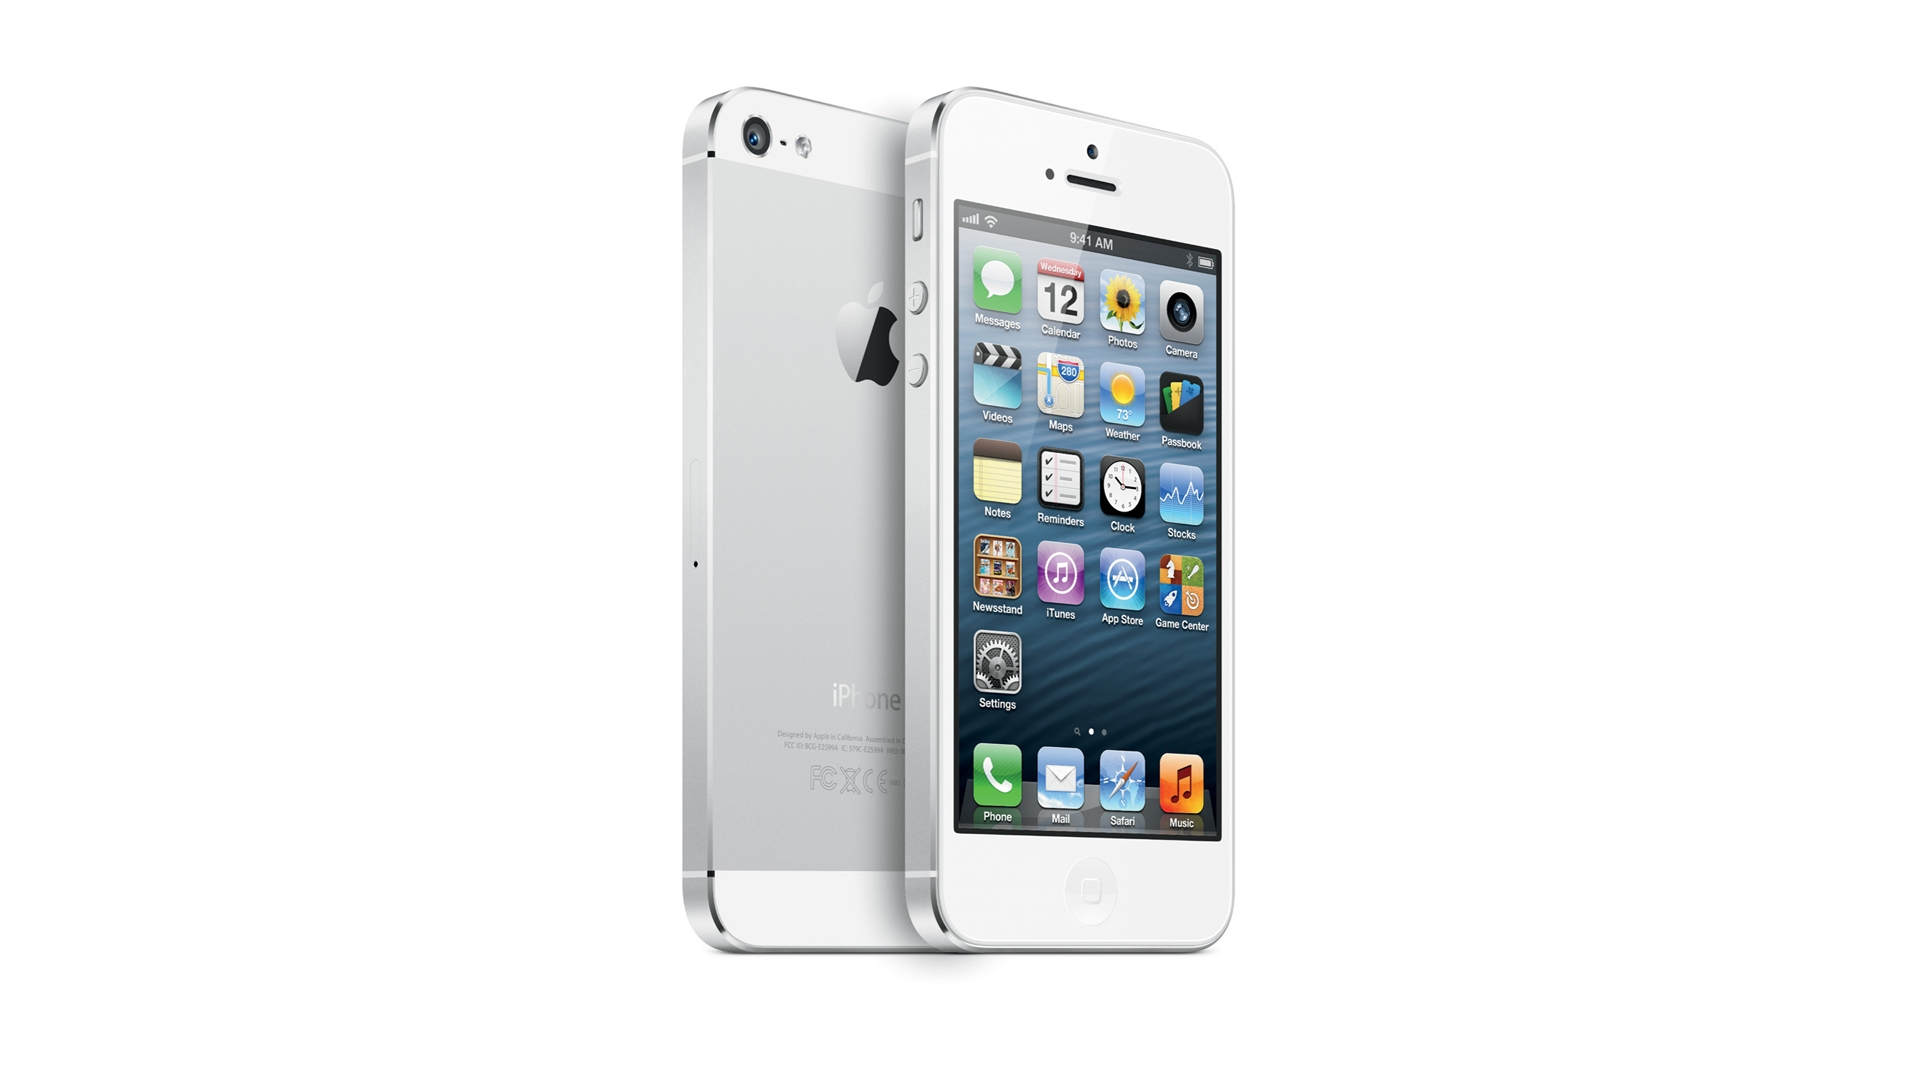 White iPhone 5 - High Definition Wallpapers - HD wallpapers